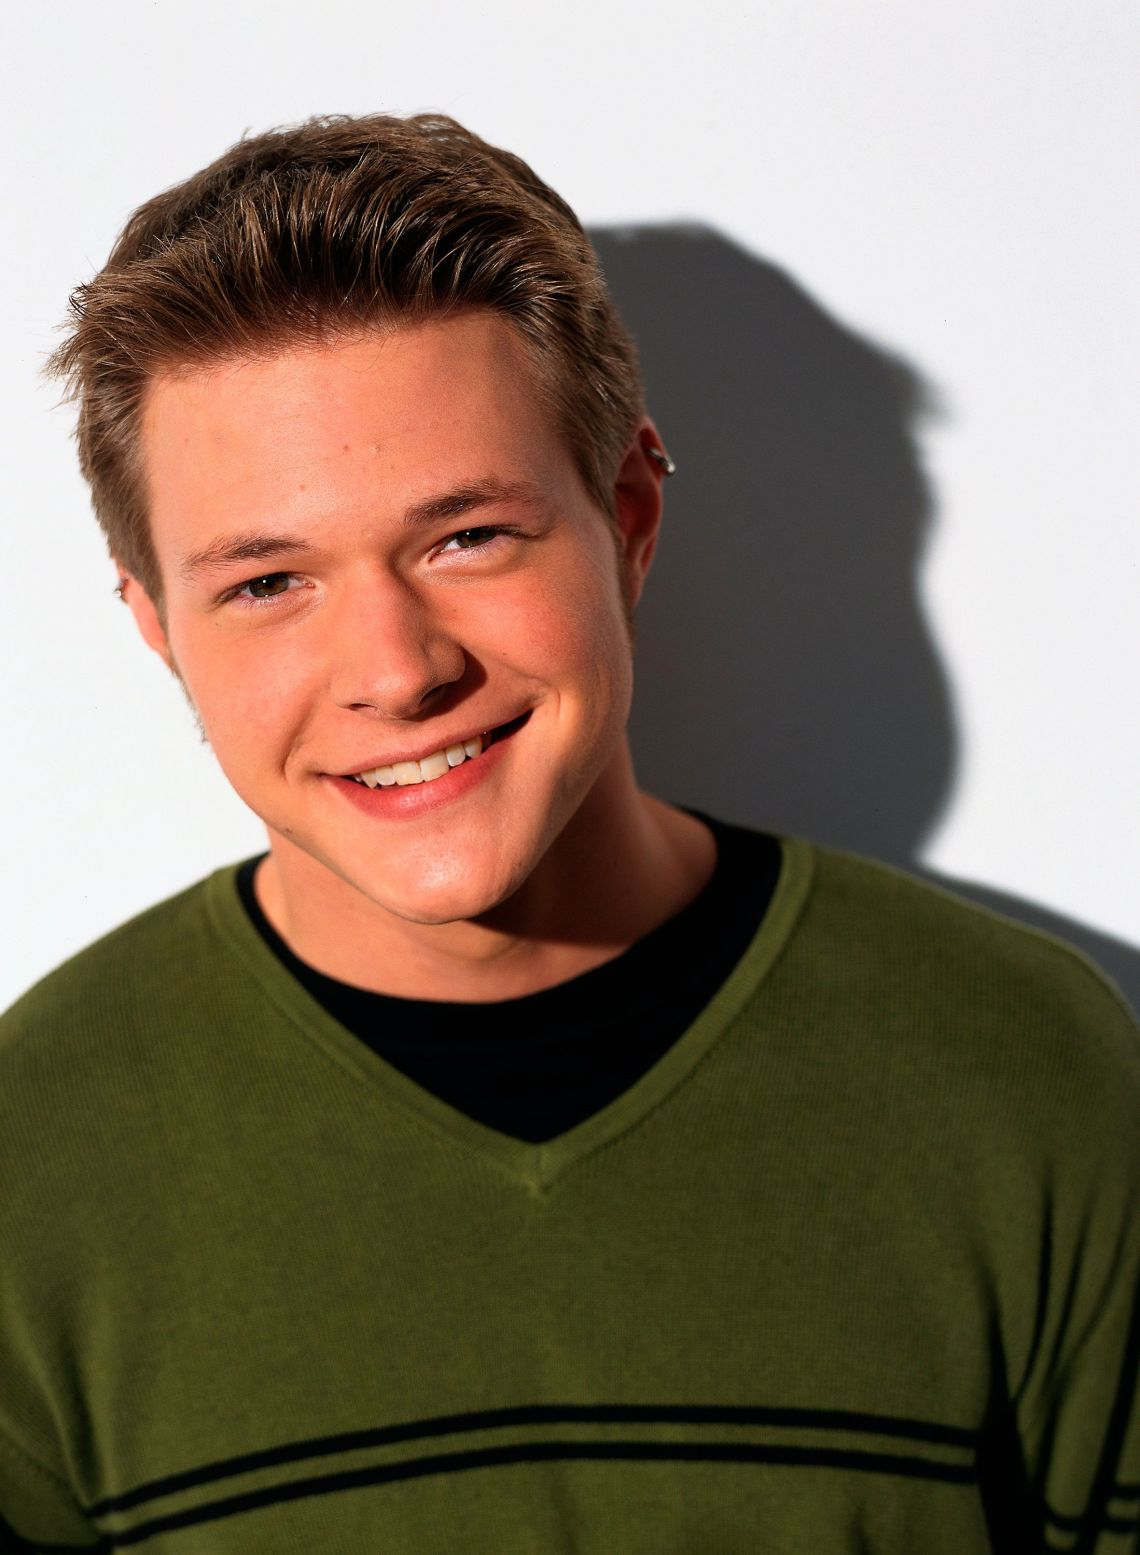 Harvey was Sabrina's classmate and main love interest throughout the series. While he had a reduced role in season five, the returned on a regular basis in season six and dated Sabrina's roommate Morgan. In the final episode, Sabrina called off her wedding to Aaron and rode off with Harvey into the sunset.